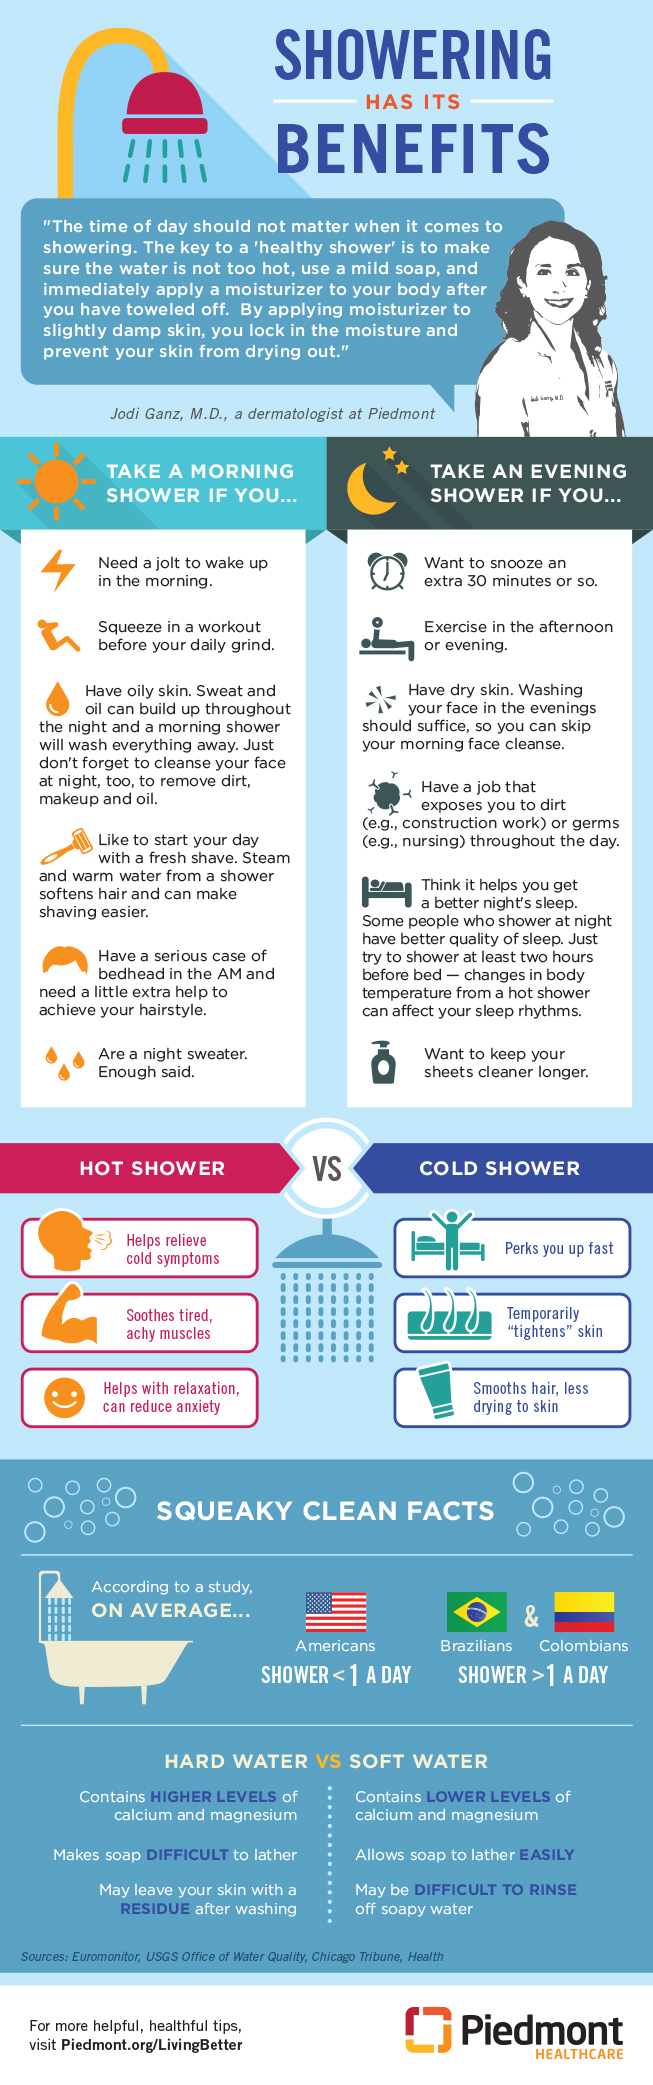 Showering has its health benefits graphic.